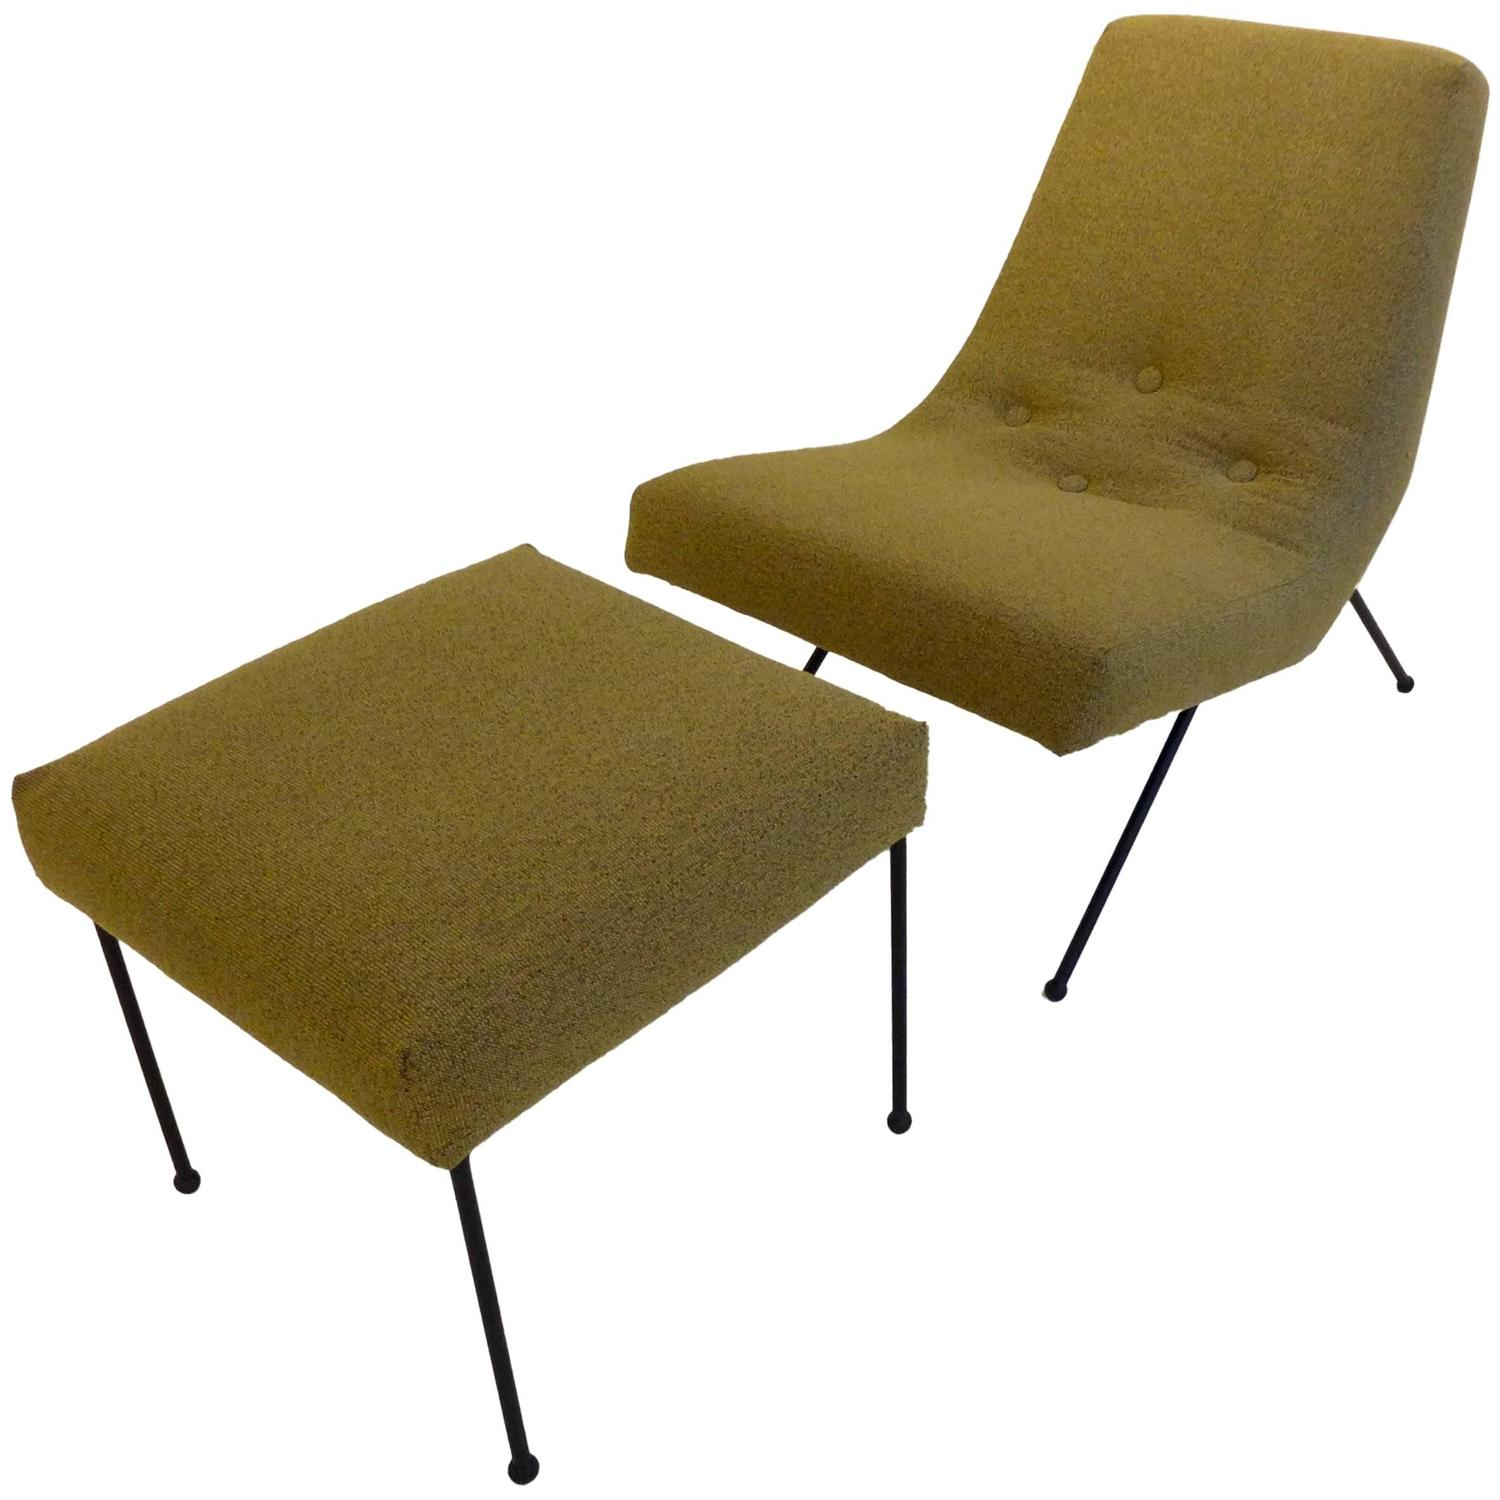 adrian pearsall lounge chair desk chairs cheap with ottoman for sale at 1stdibs